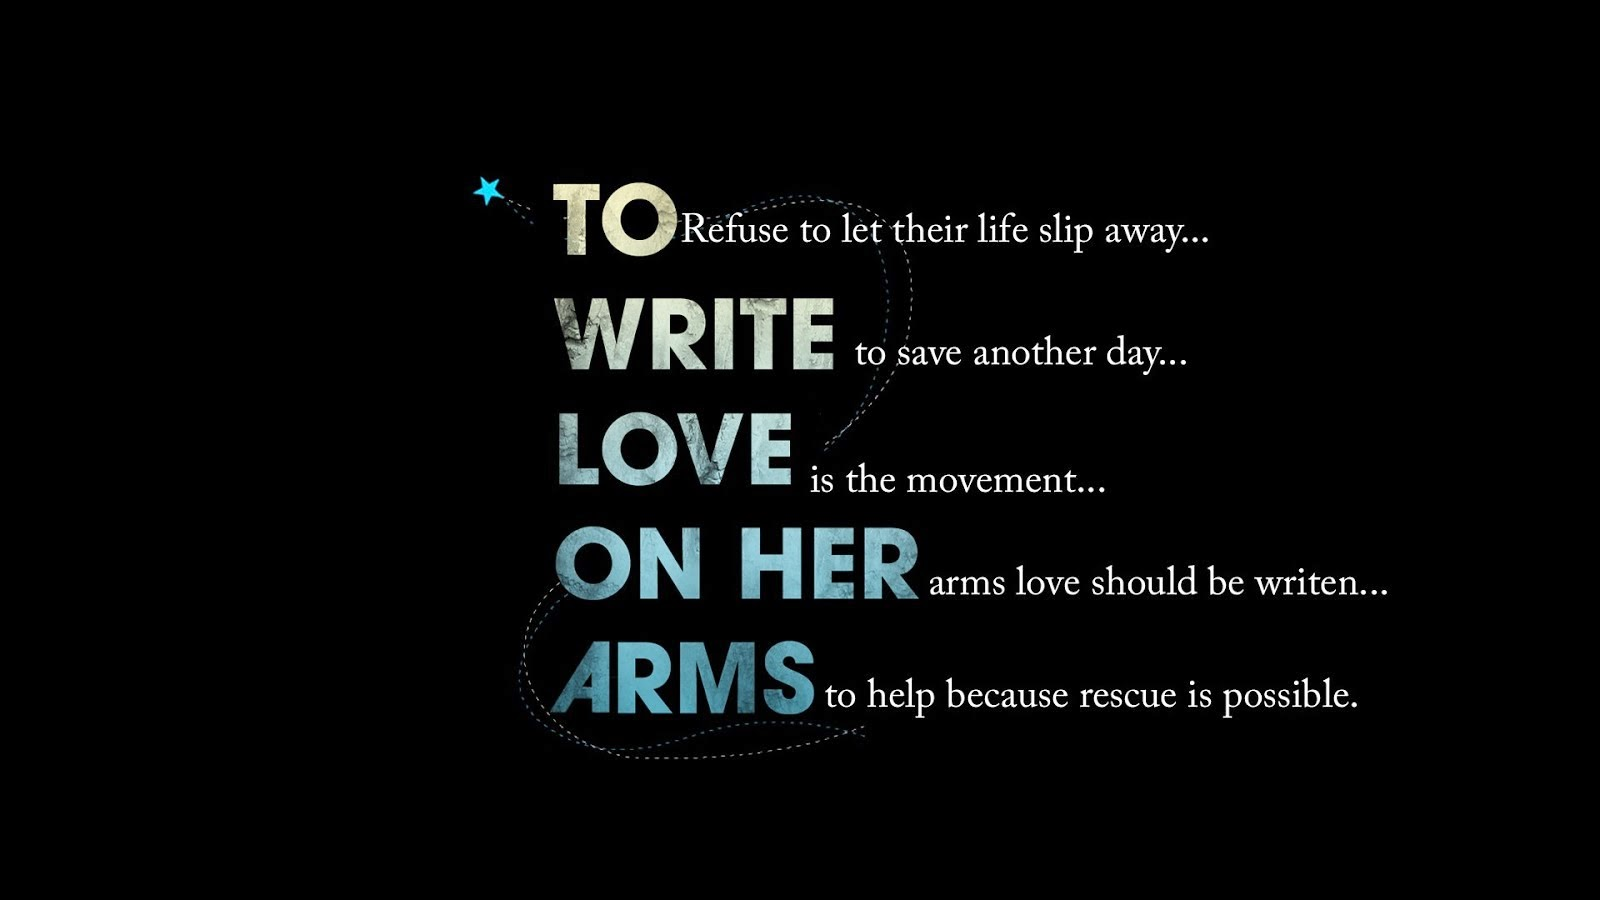 Love Quotes Wallpapers | HD Wallpapers | Download Free High Definition Desktop / PC Wallpapers